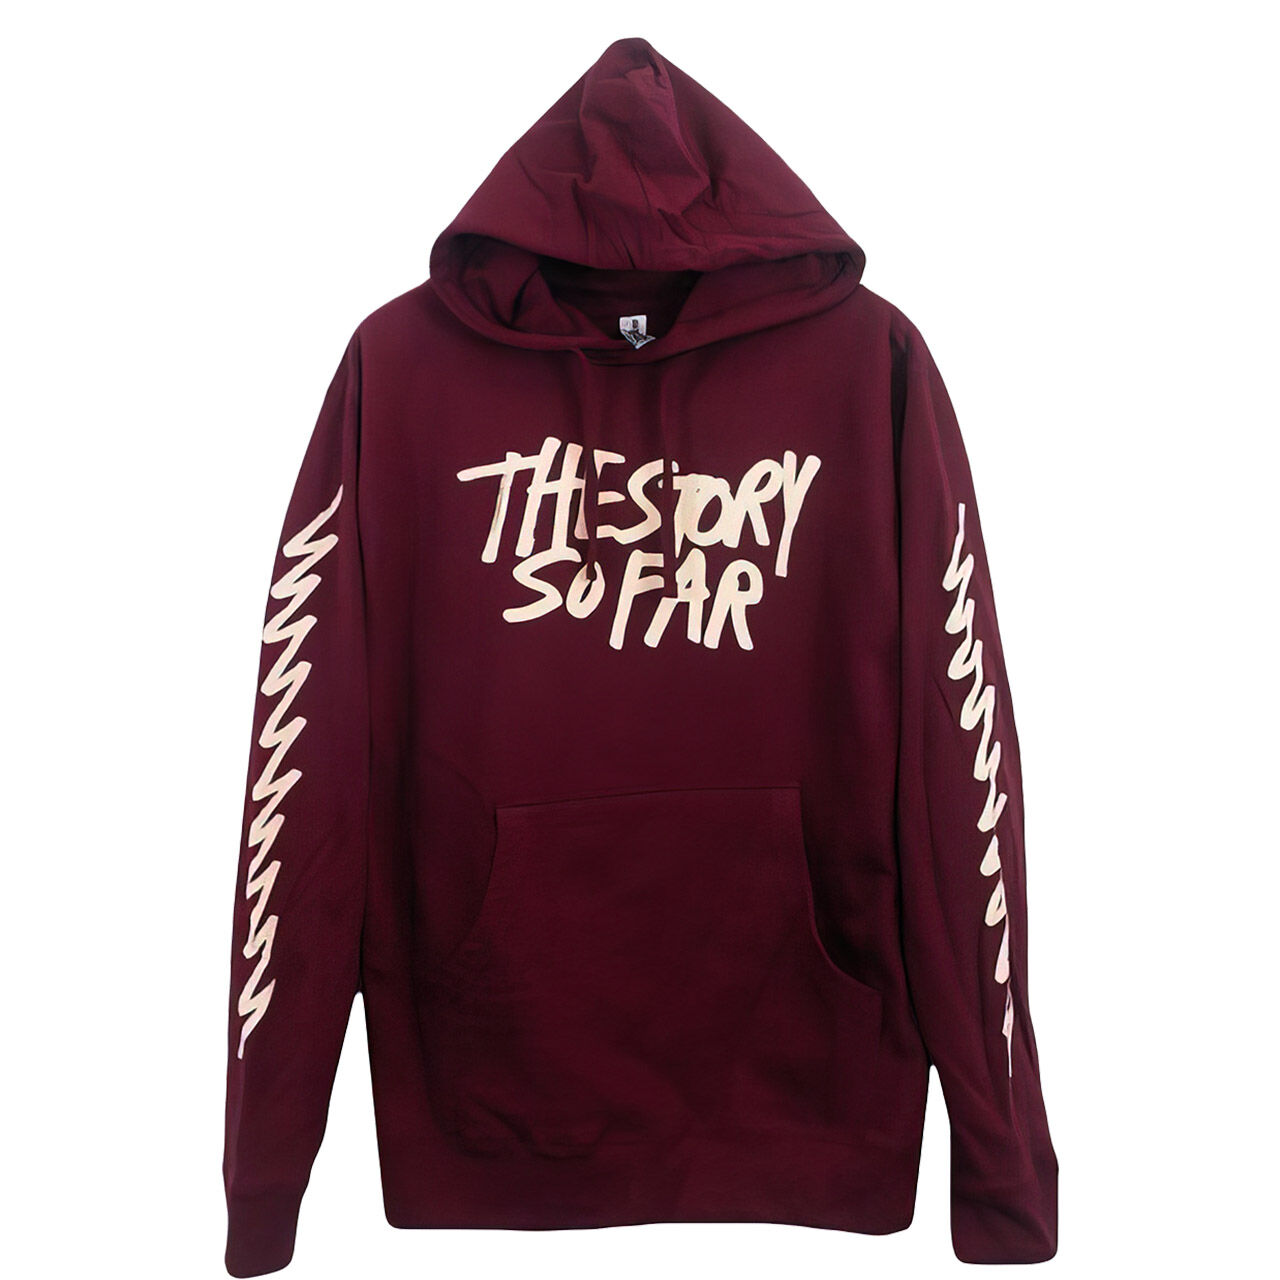 THE STORY SO FAR Eye Pullover Hoodie